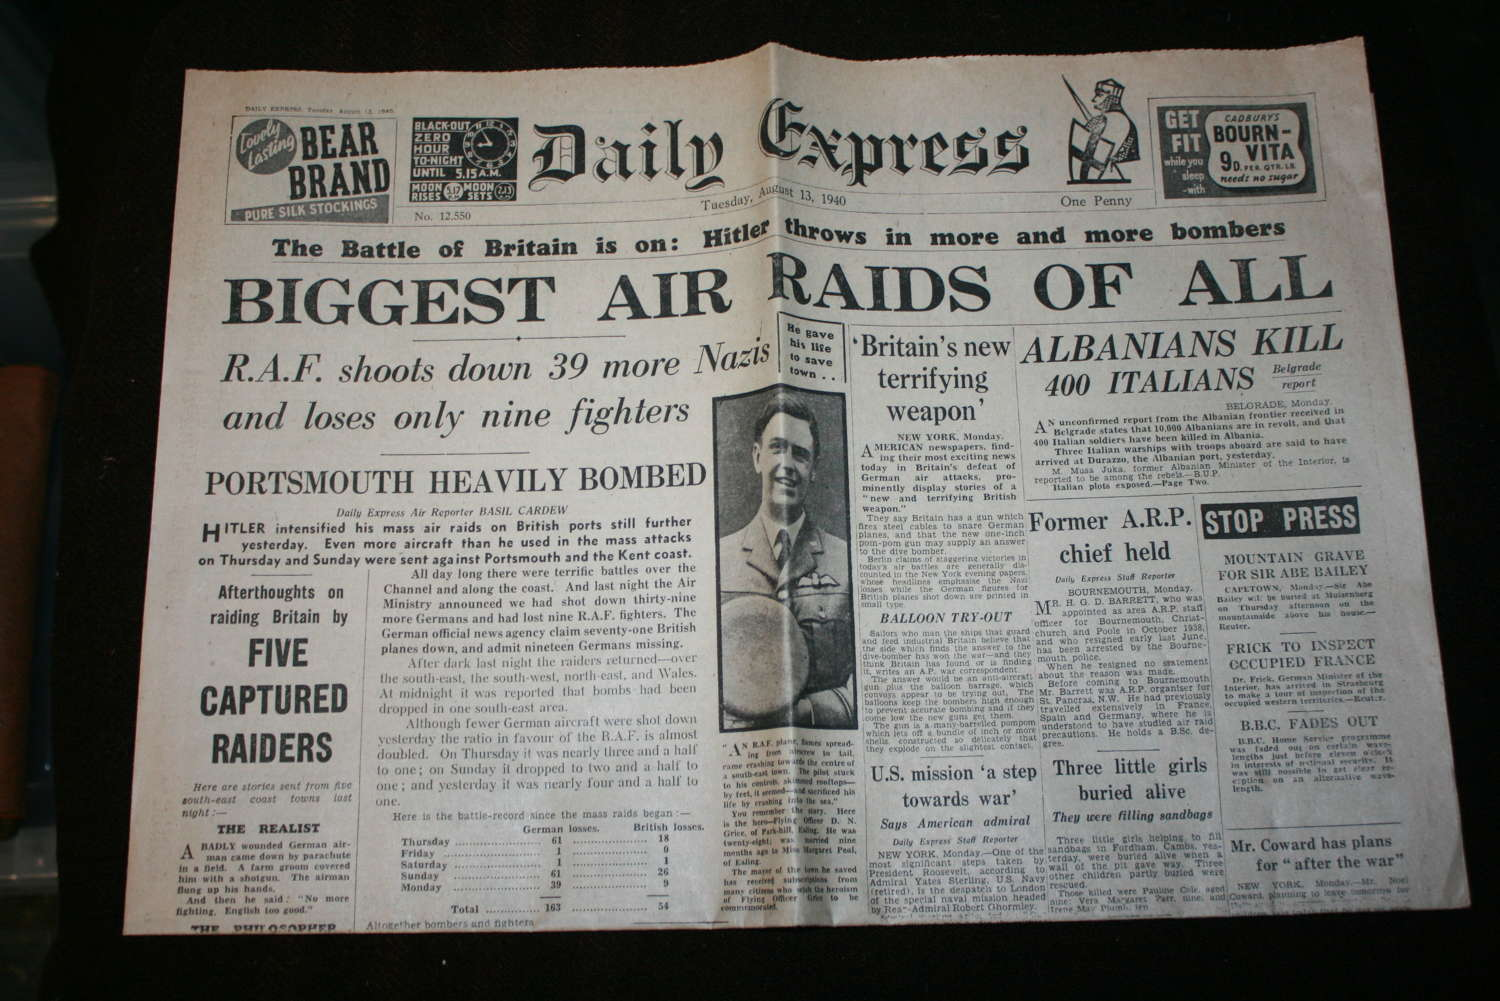 AN ORIGINAL DAILY EXPRESS 13 AUGUST 1940